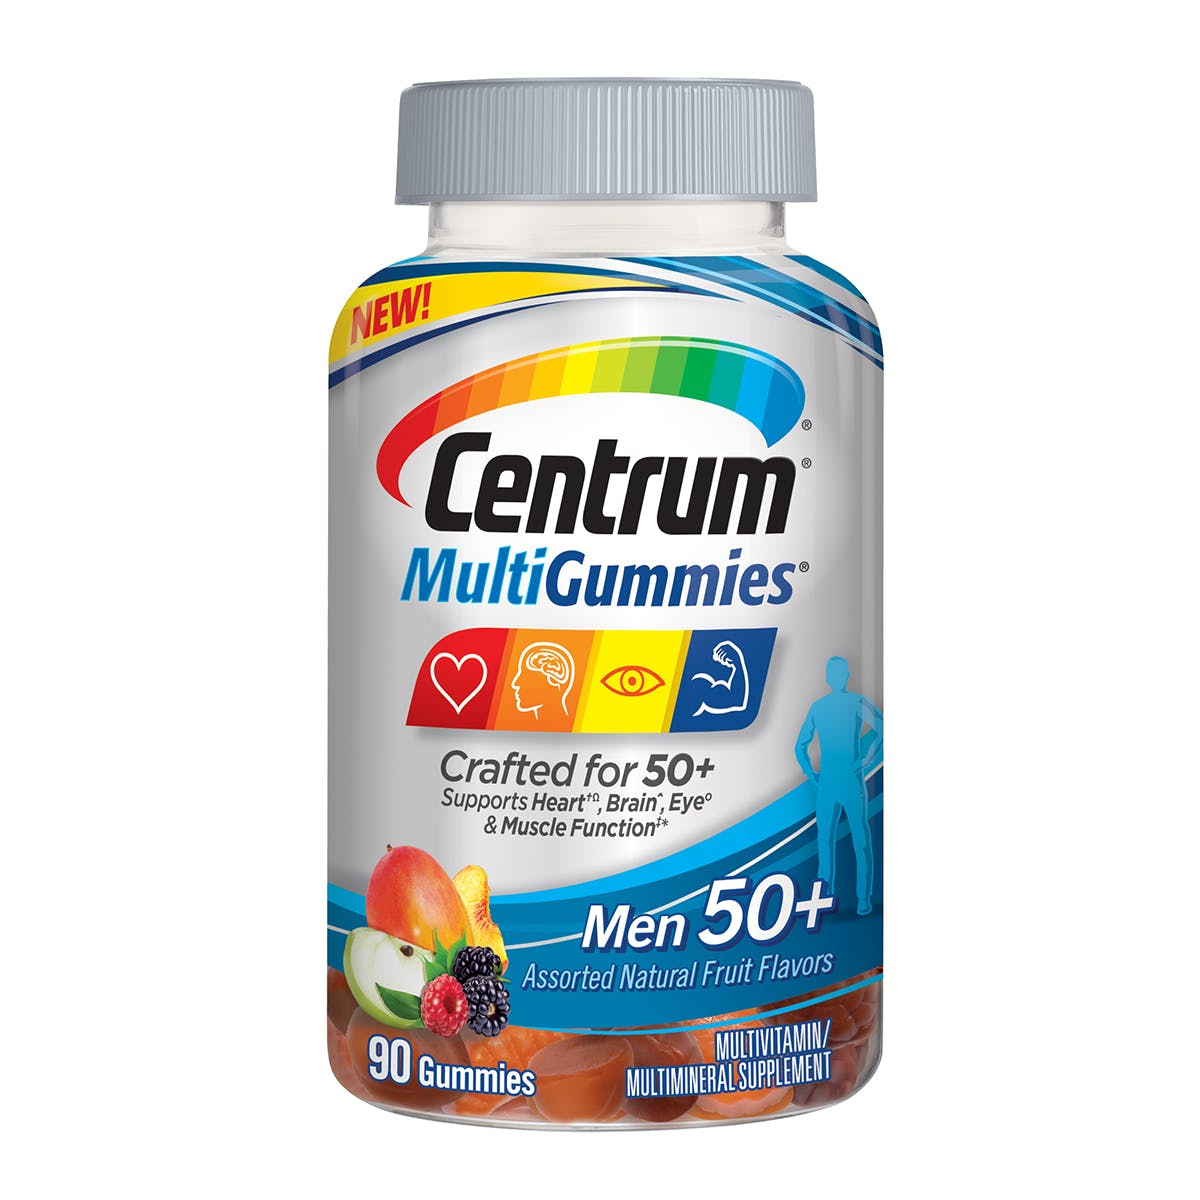 Bottle of centrum MultiGummies Men 50plus vitamins